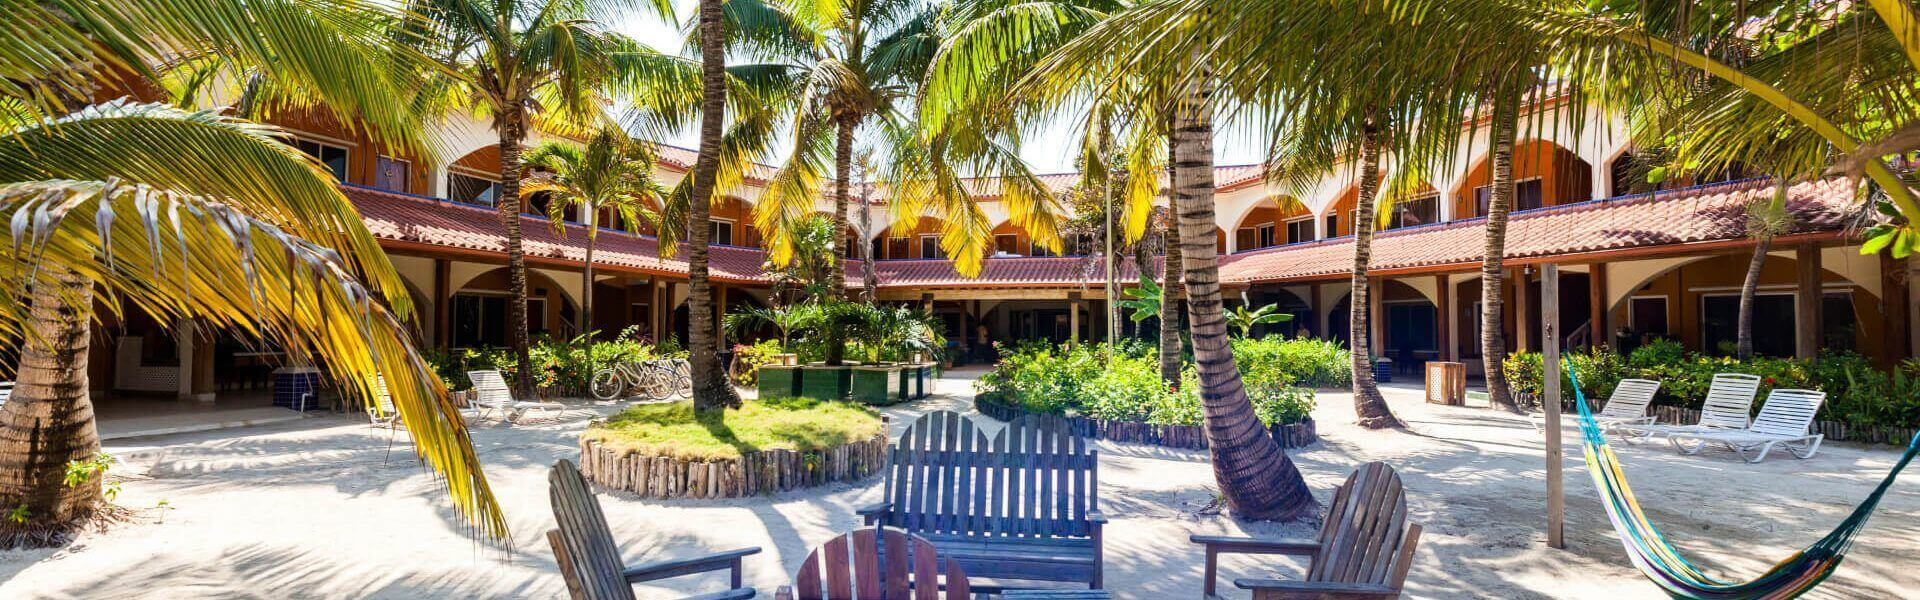 Sunbreeze Courtyard Seating Area Ambergris Caye Beize